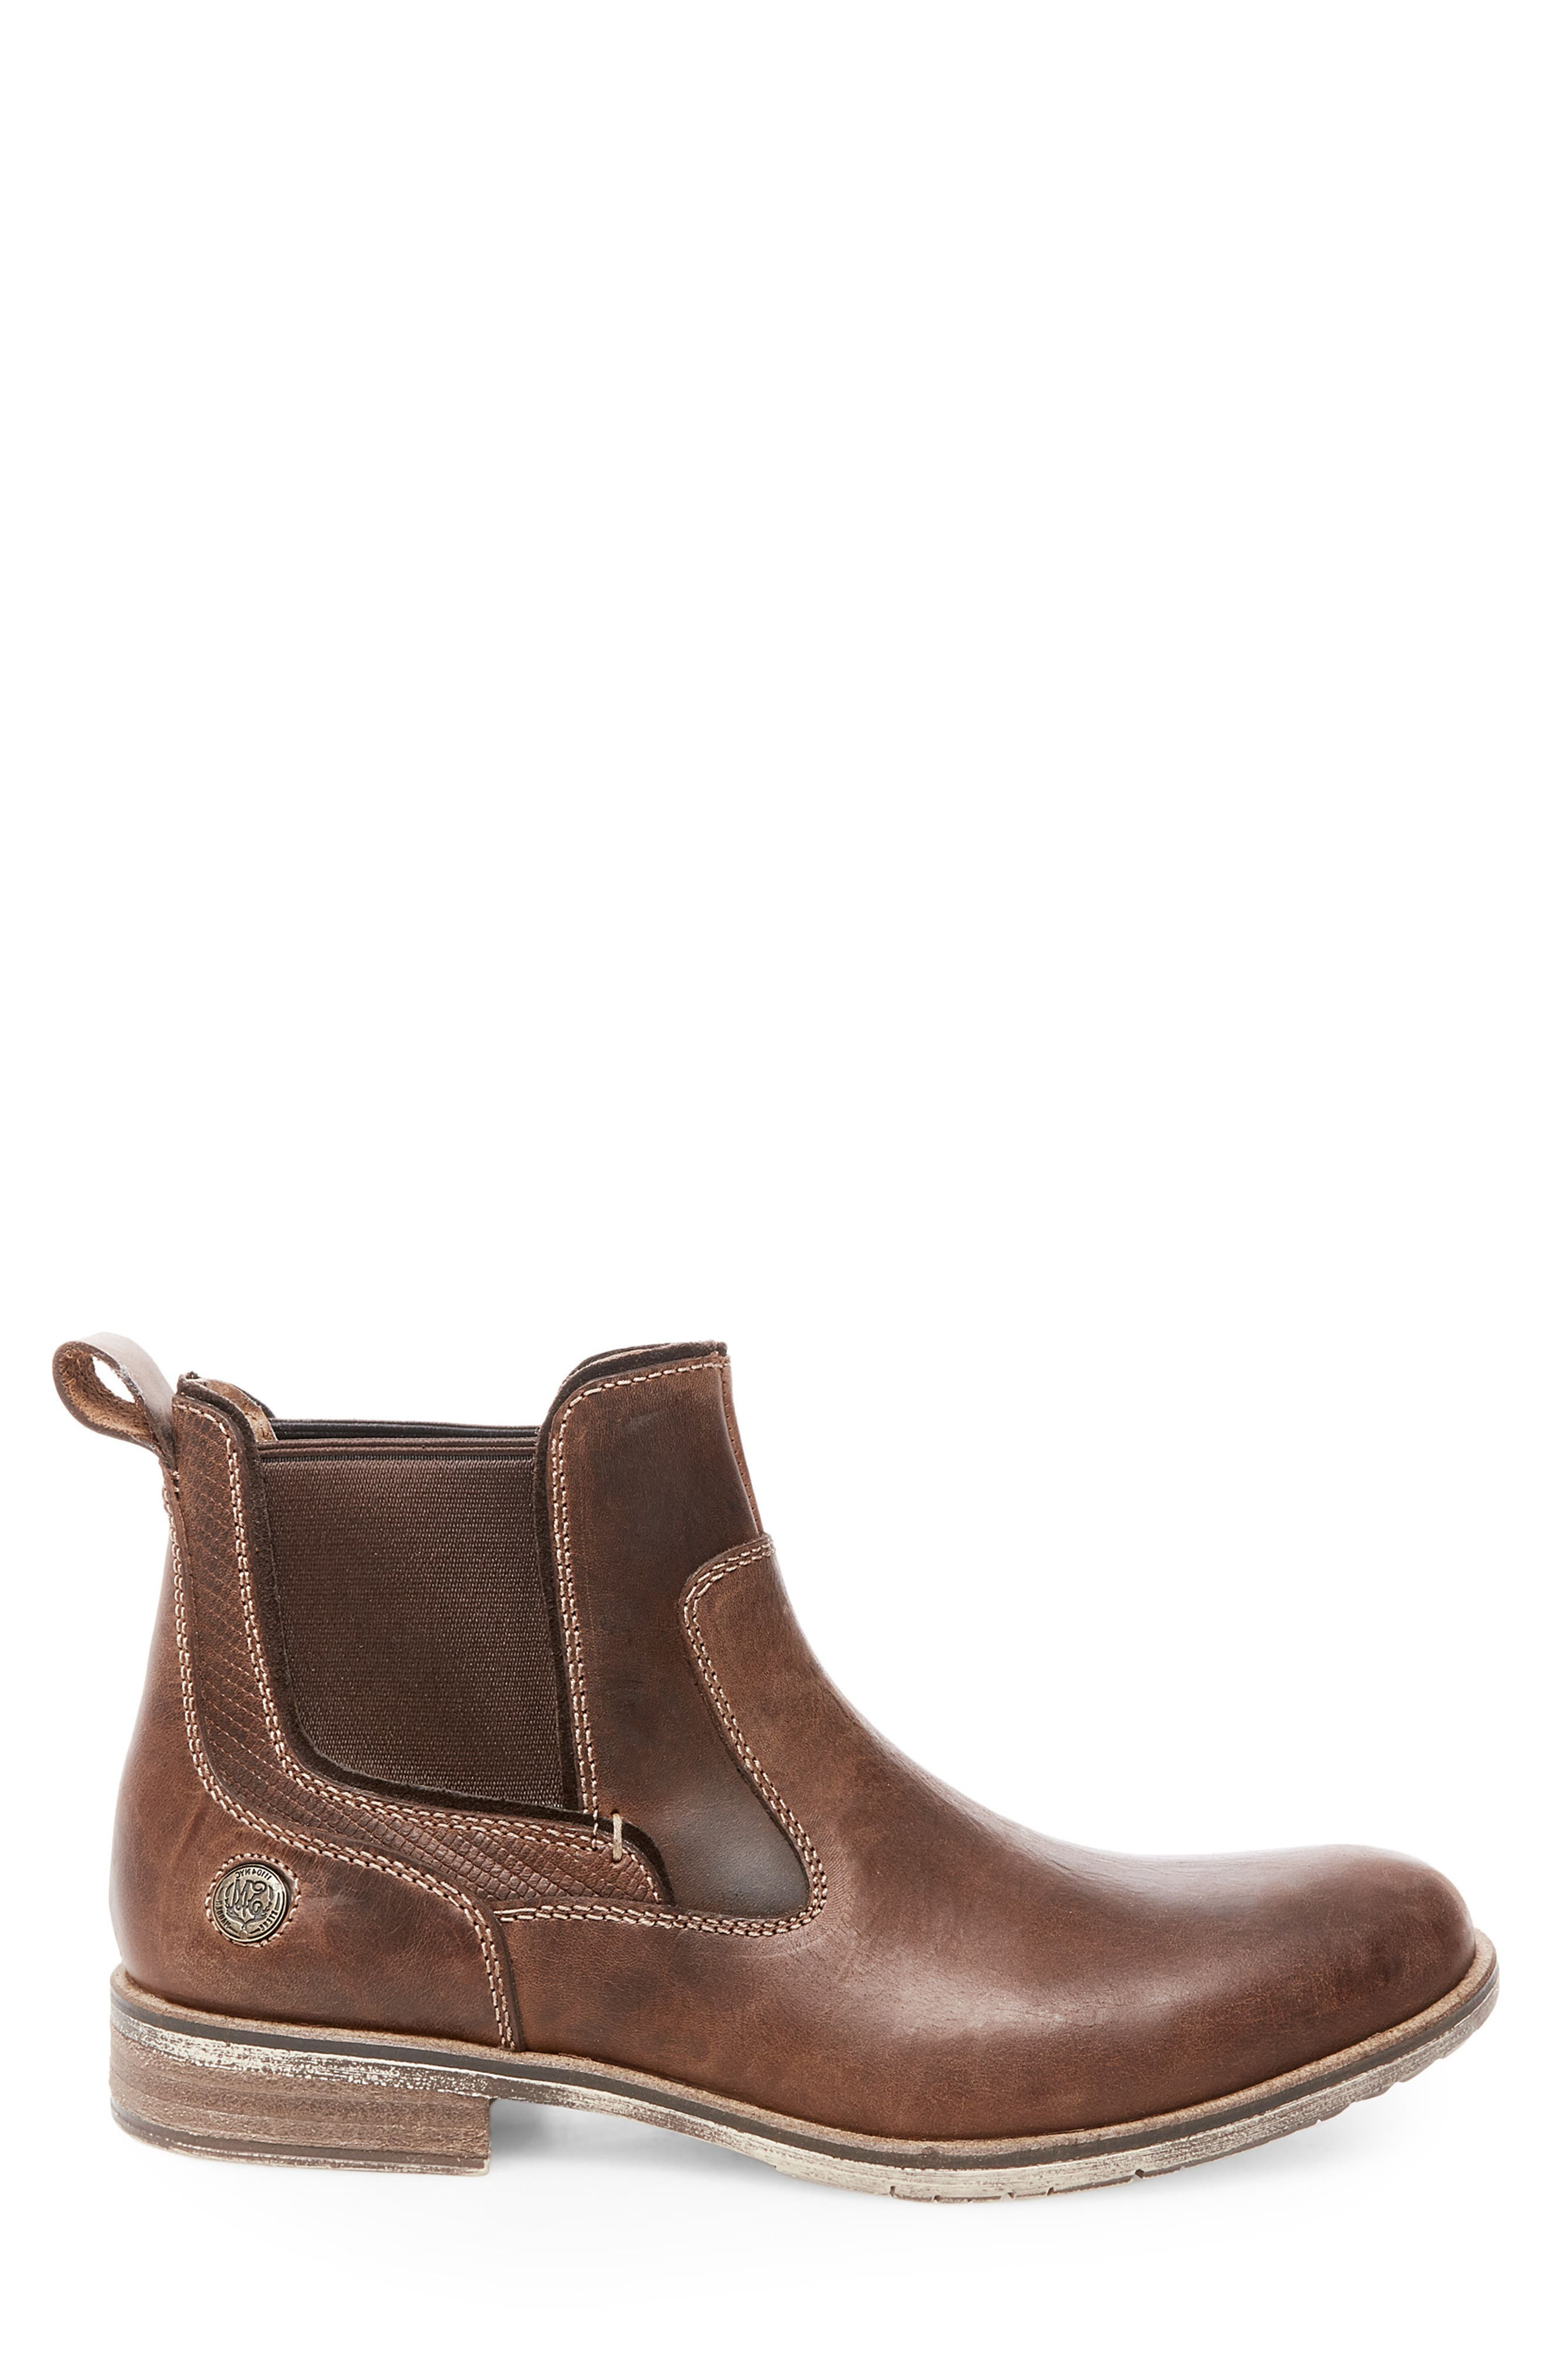 Alternate Image 3  - Steve Madden Nockdown Chelsea Boot (Men)